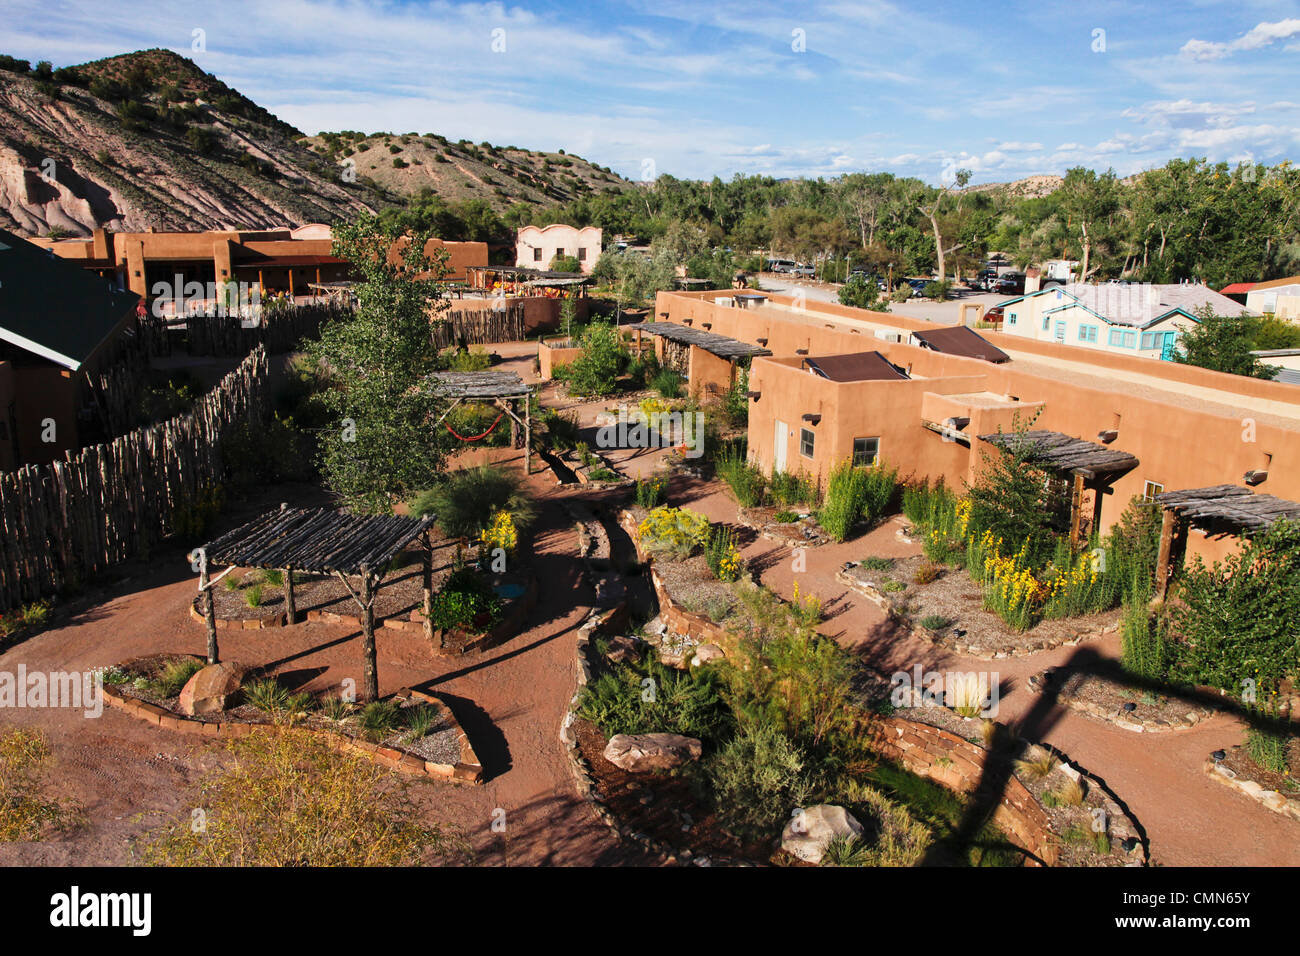 Ojo Caliente, New Mexico, United States. Mineral Springs and spa. (PR) - Stock Image